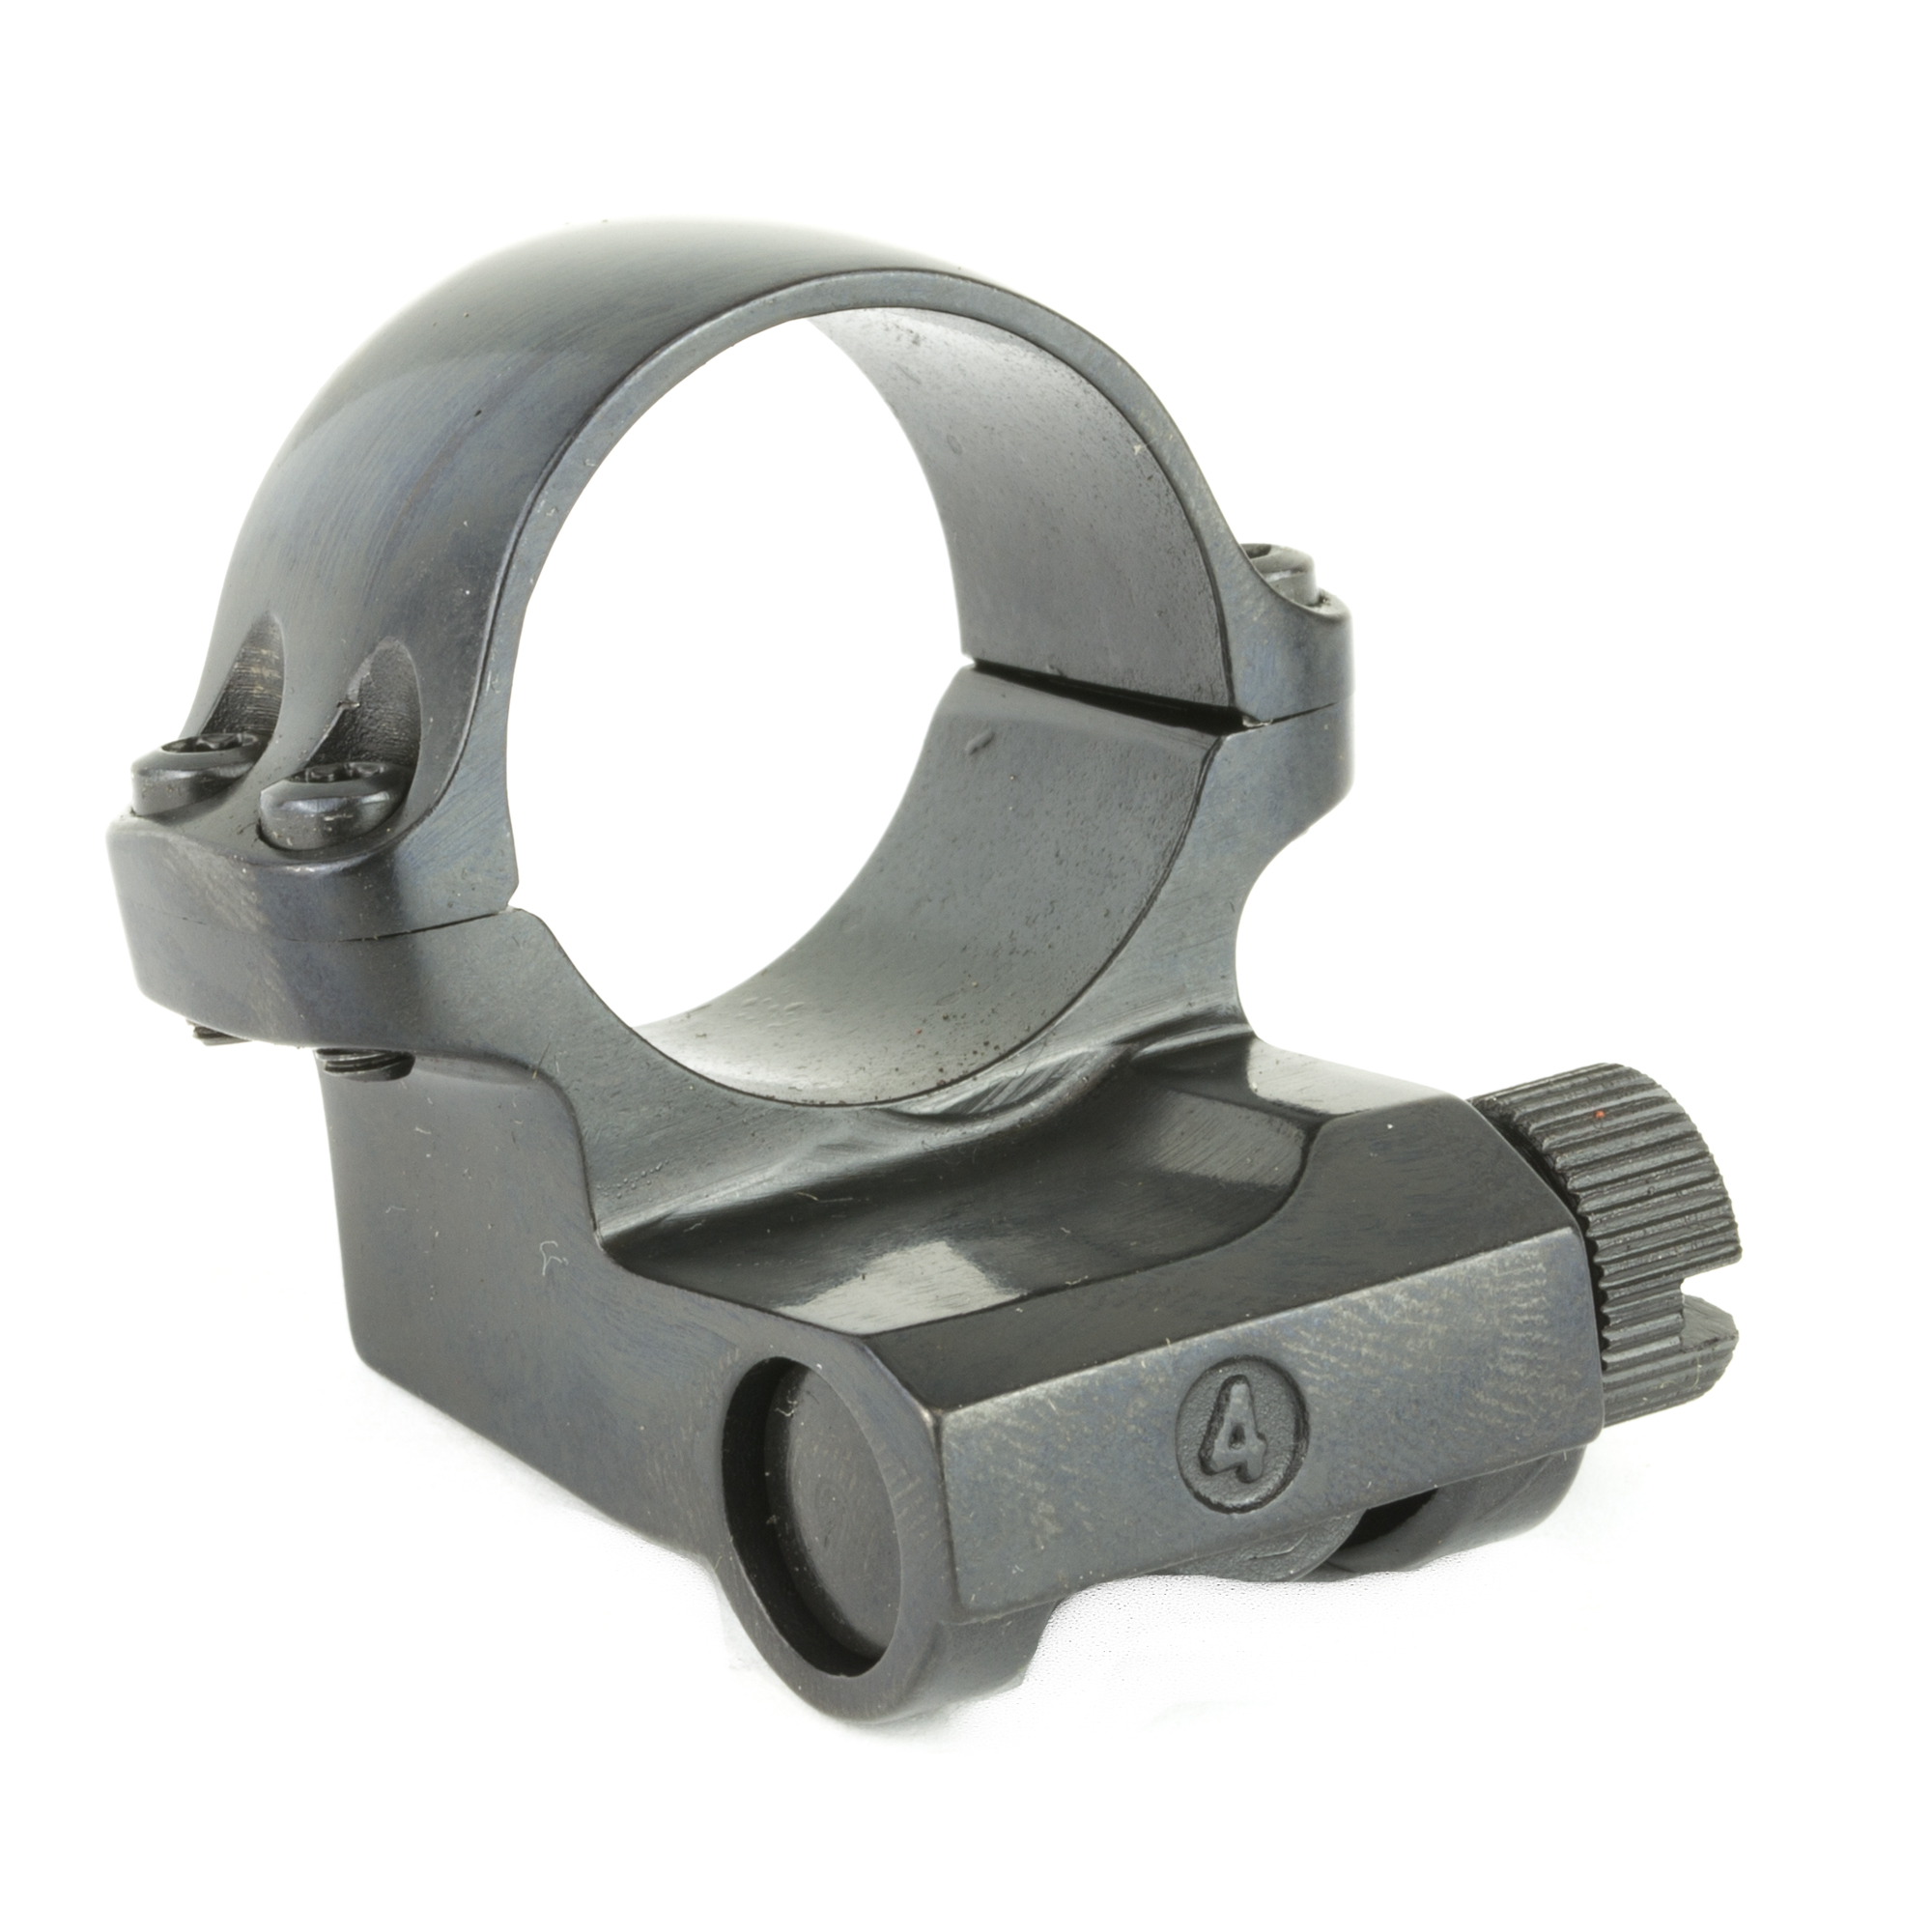 Offset Medium Scope Ring with a Blued Finish. Designed to fit a scope with a one-inch scope tube diameter and a 42MM objective diameter and allows for rearward positioning of the scope. Sold individually.